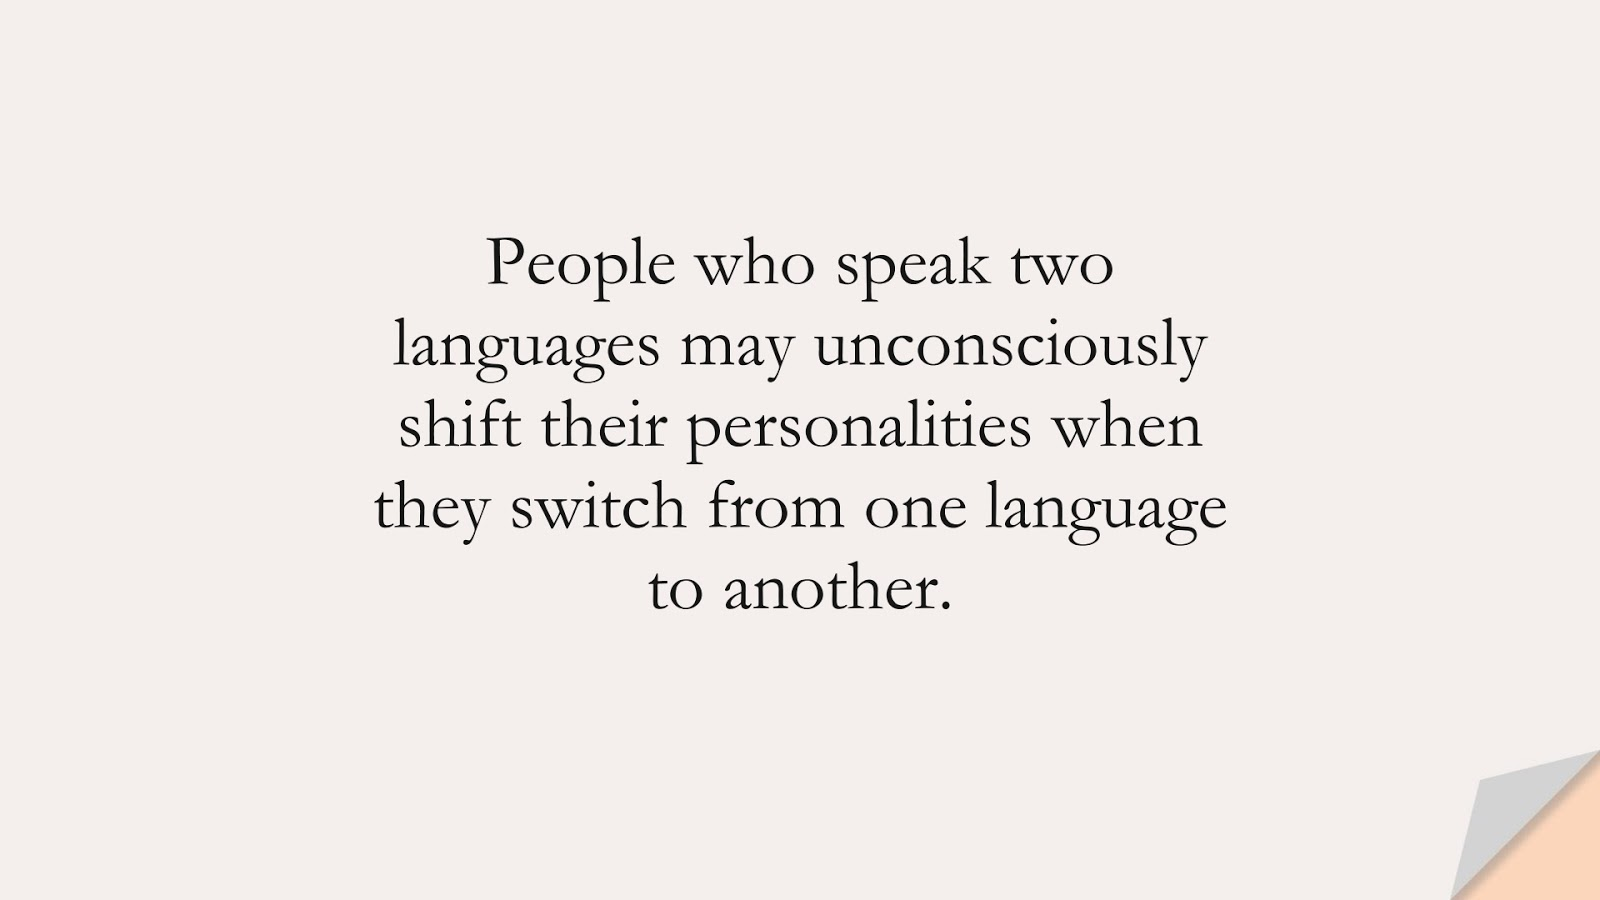 People who speak two languages may unconsciously shift their personalities when they switch from one language to another.FALSE